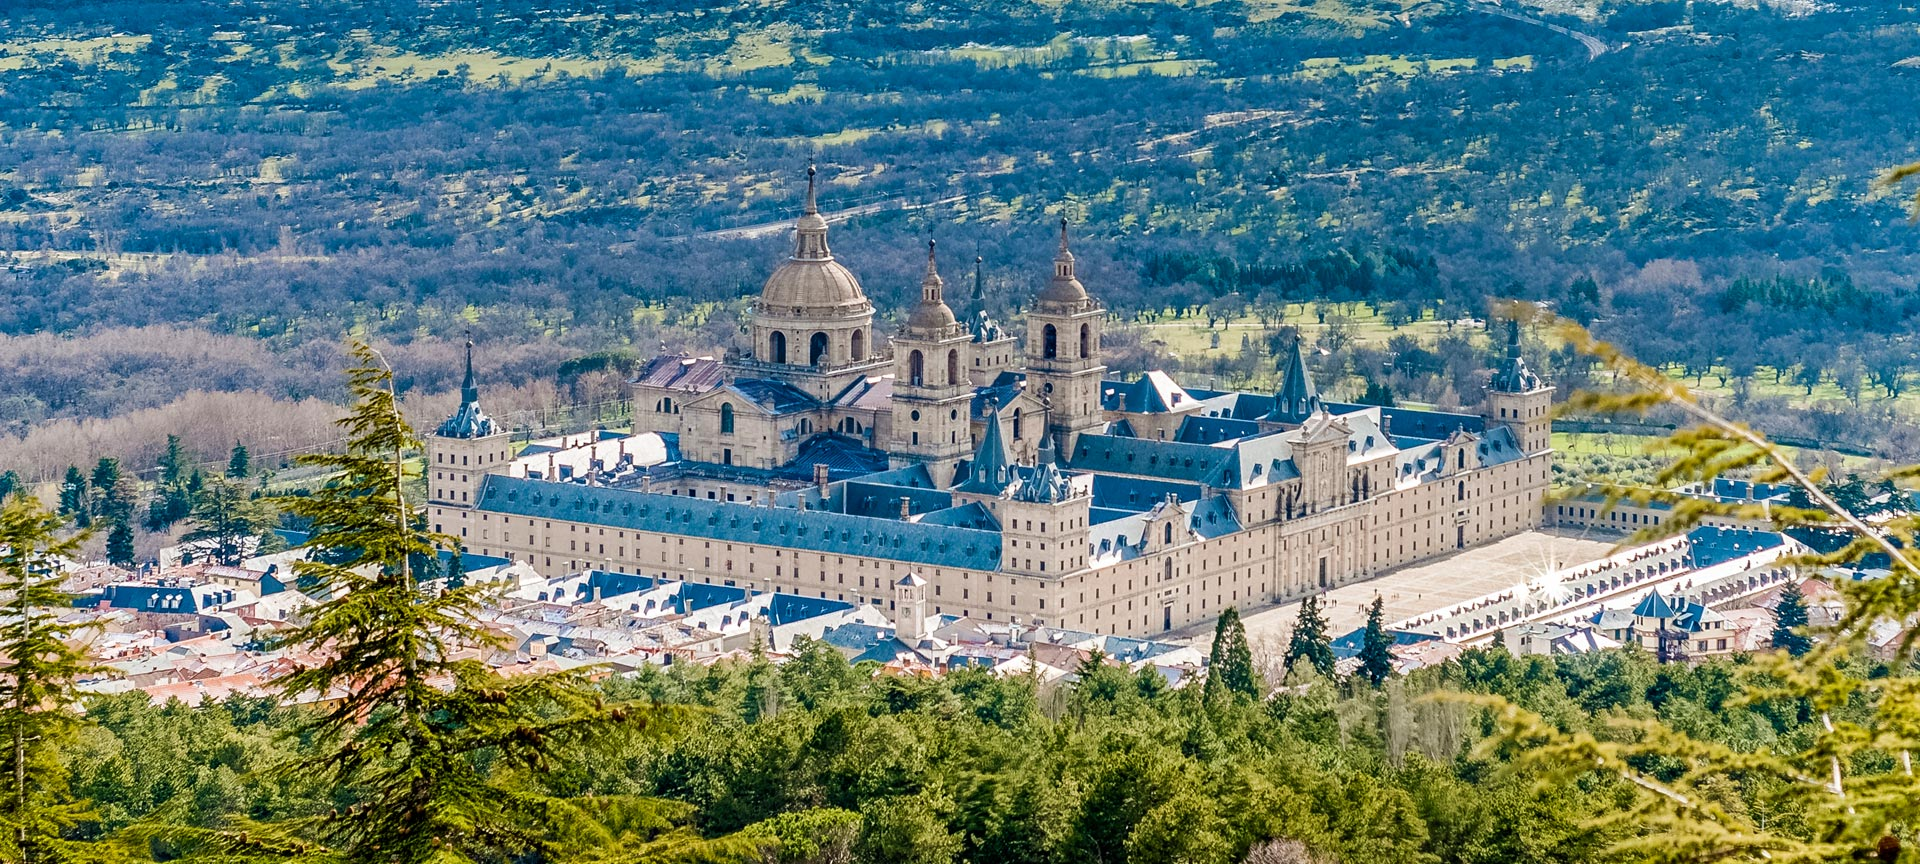 Royal Monastery Of San Lorenzo De El Escorial Madrid Info Spain Info In English